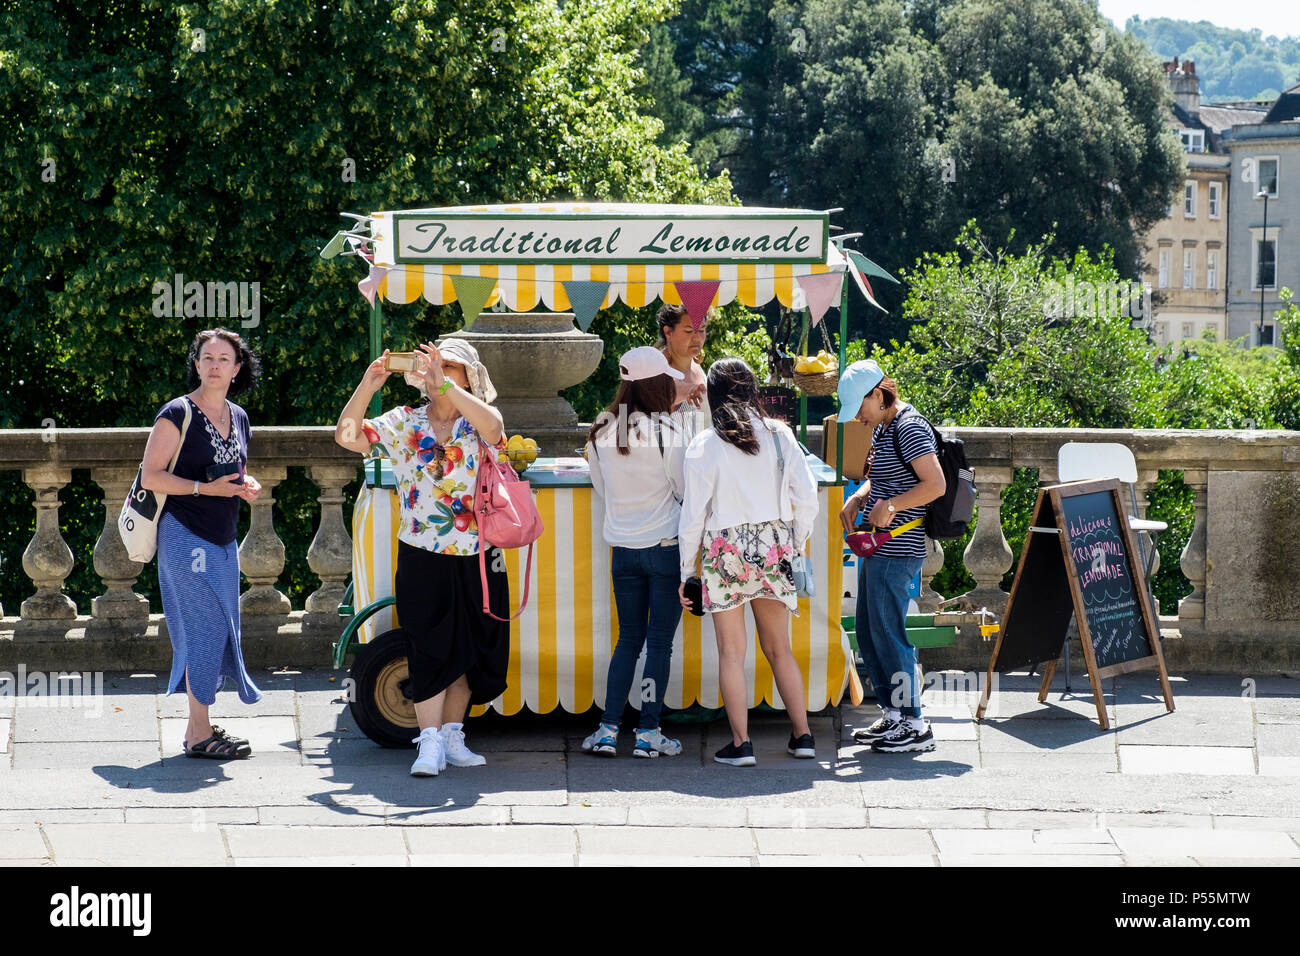 Bath, UK, 25th June, 2018.  As Bath enjoys another hot and sunny day tourists are pictured buying some cool refreshing traditional lemonade, forecasters predict that the warm weather will continue into next week. Credit: lynchpics/Alamy Live News - Stock Image